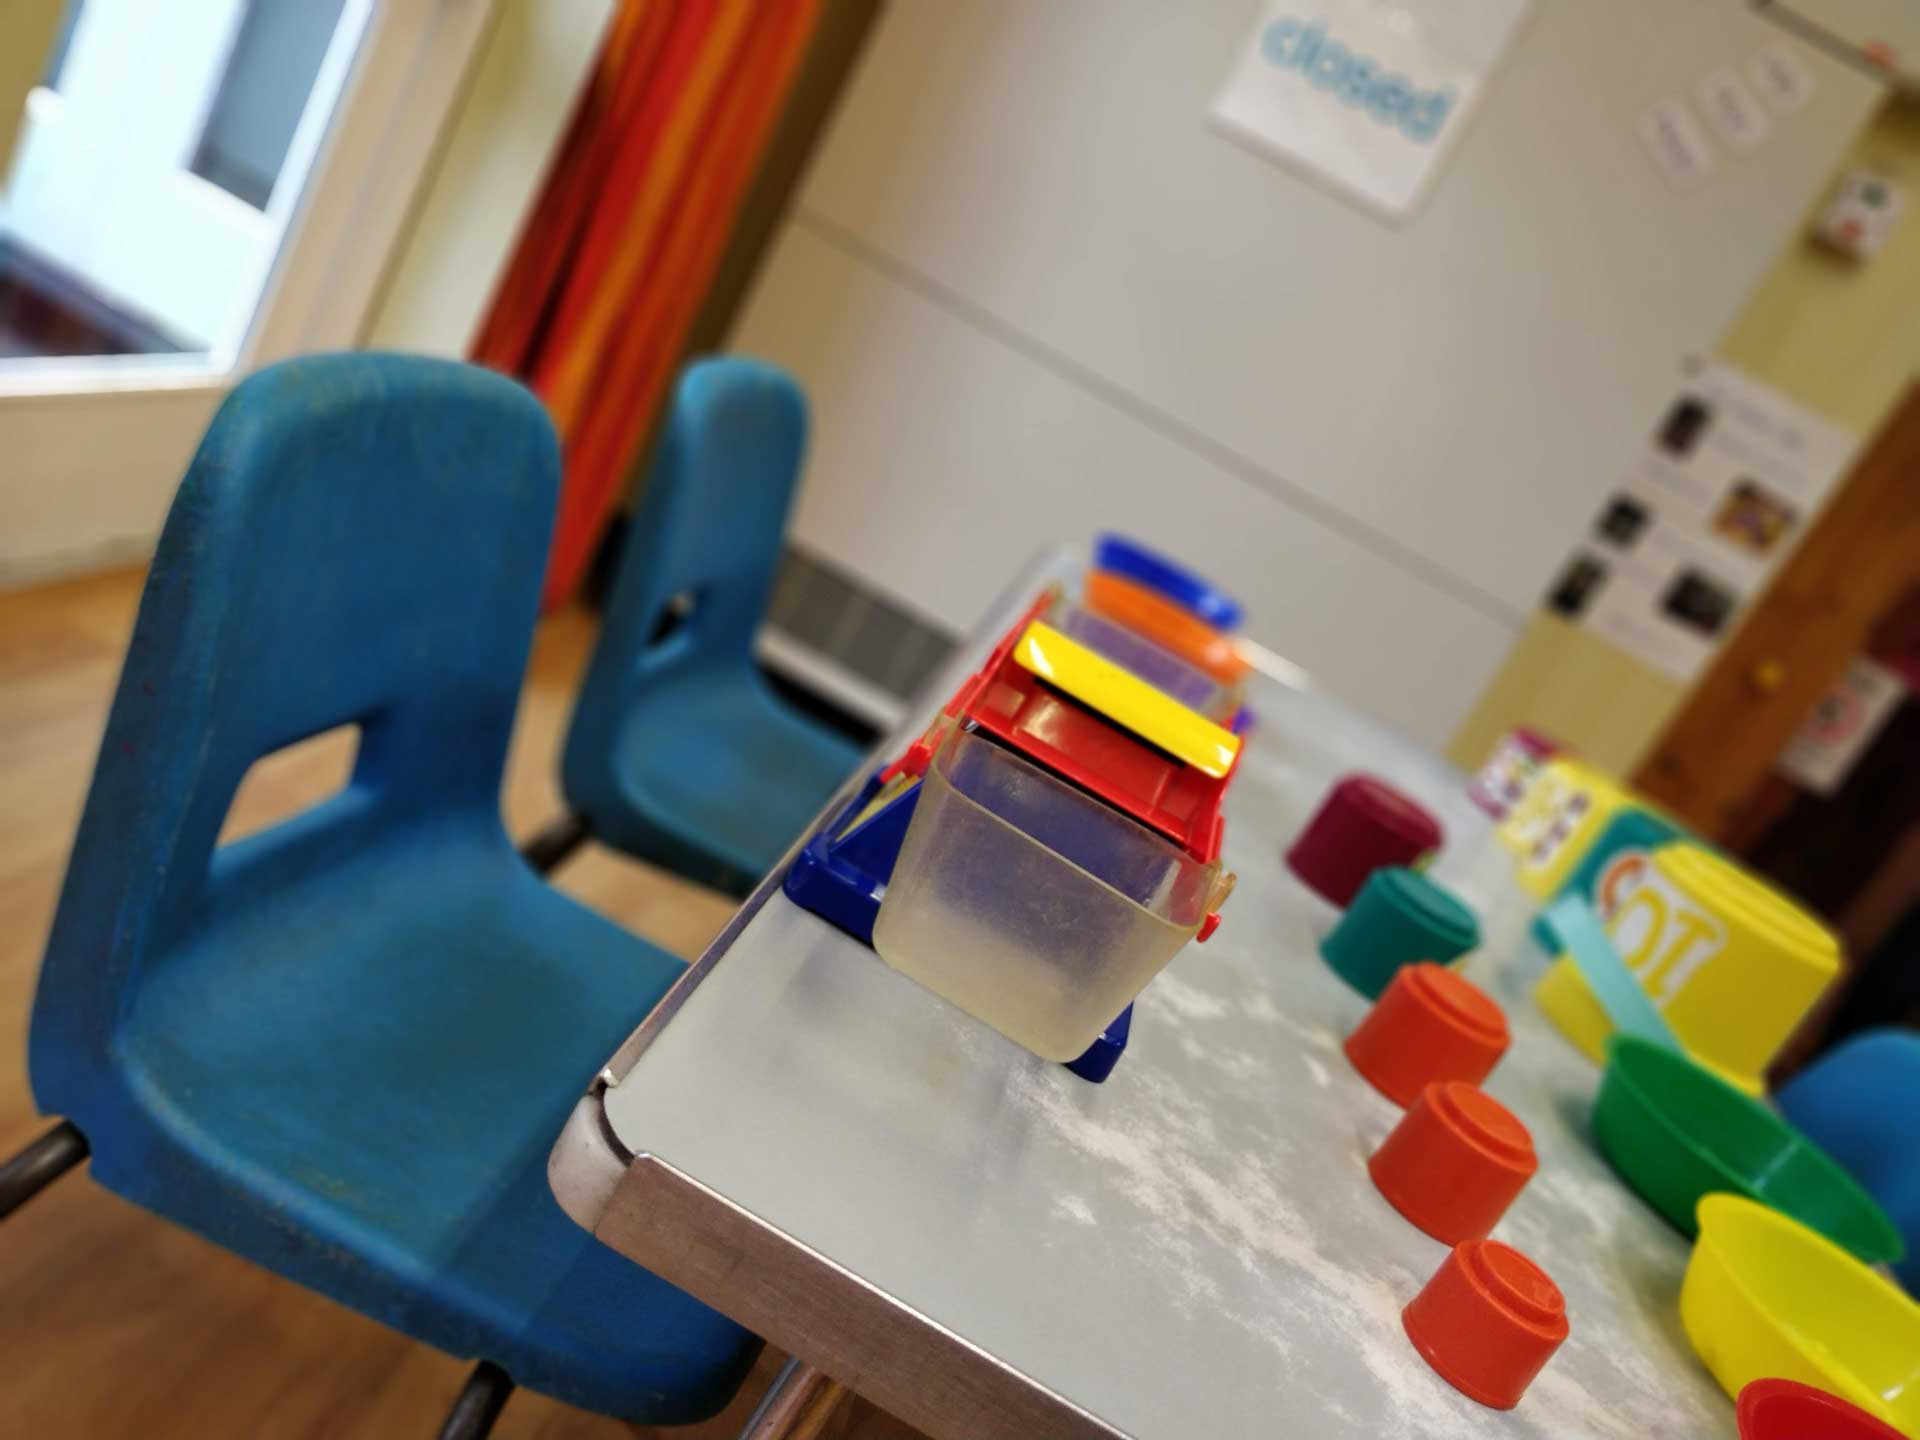 Table and chairs laid out with painting pots and paints at Rottingdean Whiteway Pre-School